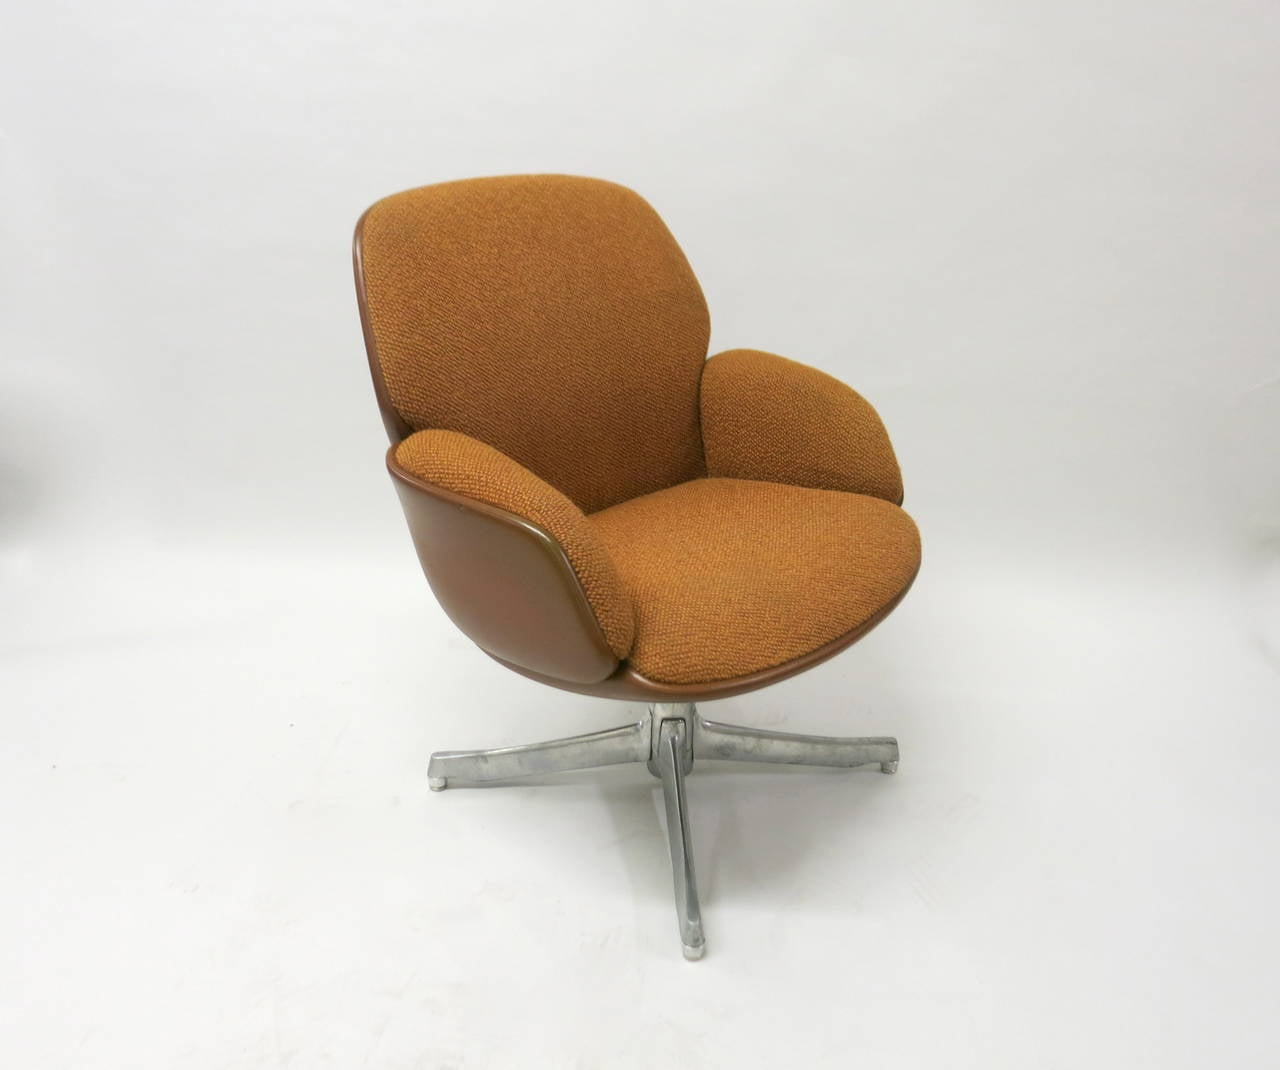 steelcase sofa platner second hand shops glasgow pair of chairs by warren for usa circa